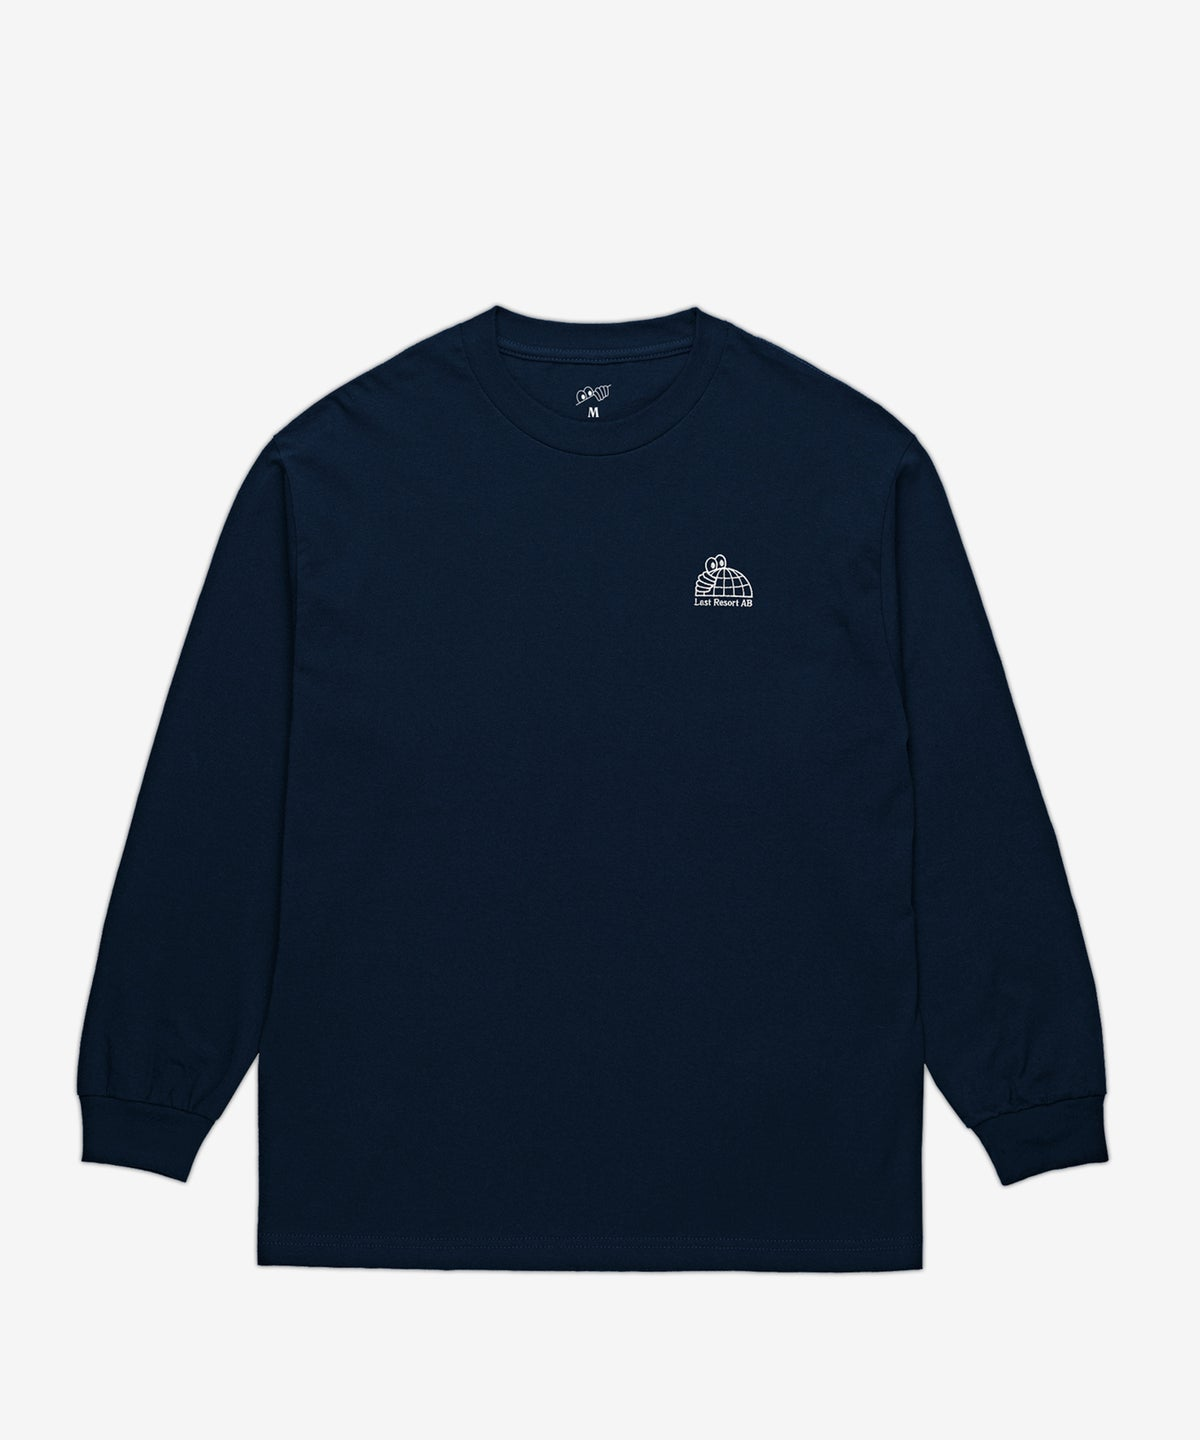 Image of LAST RESORT AB_HALF GLOBE L/S :::NAVY:::